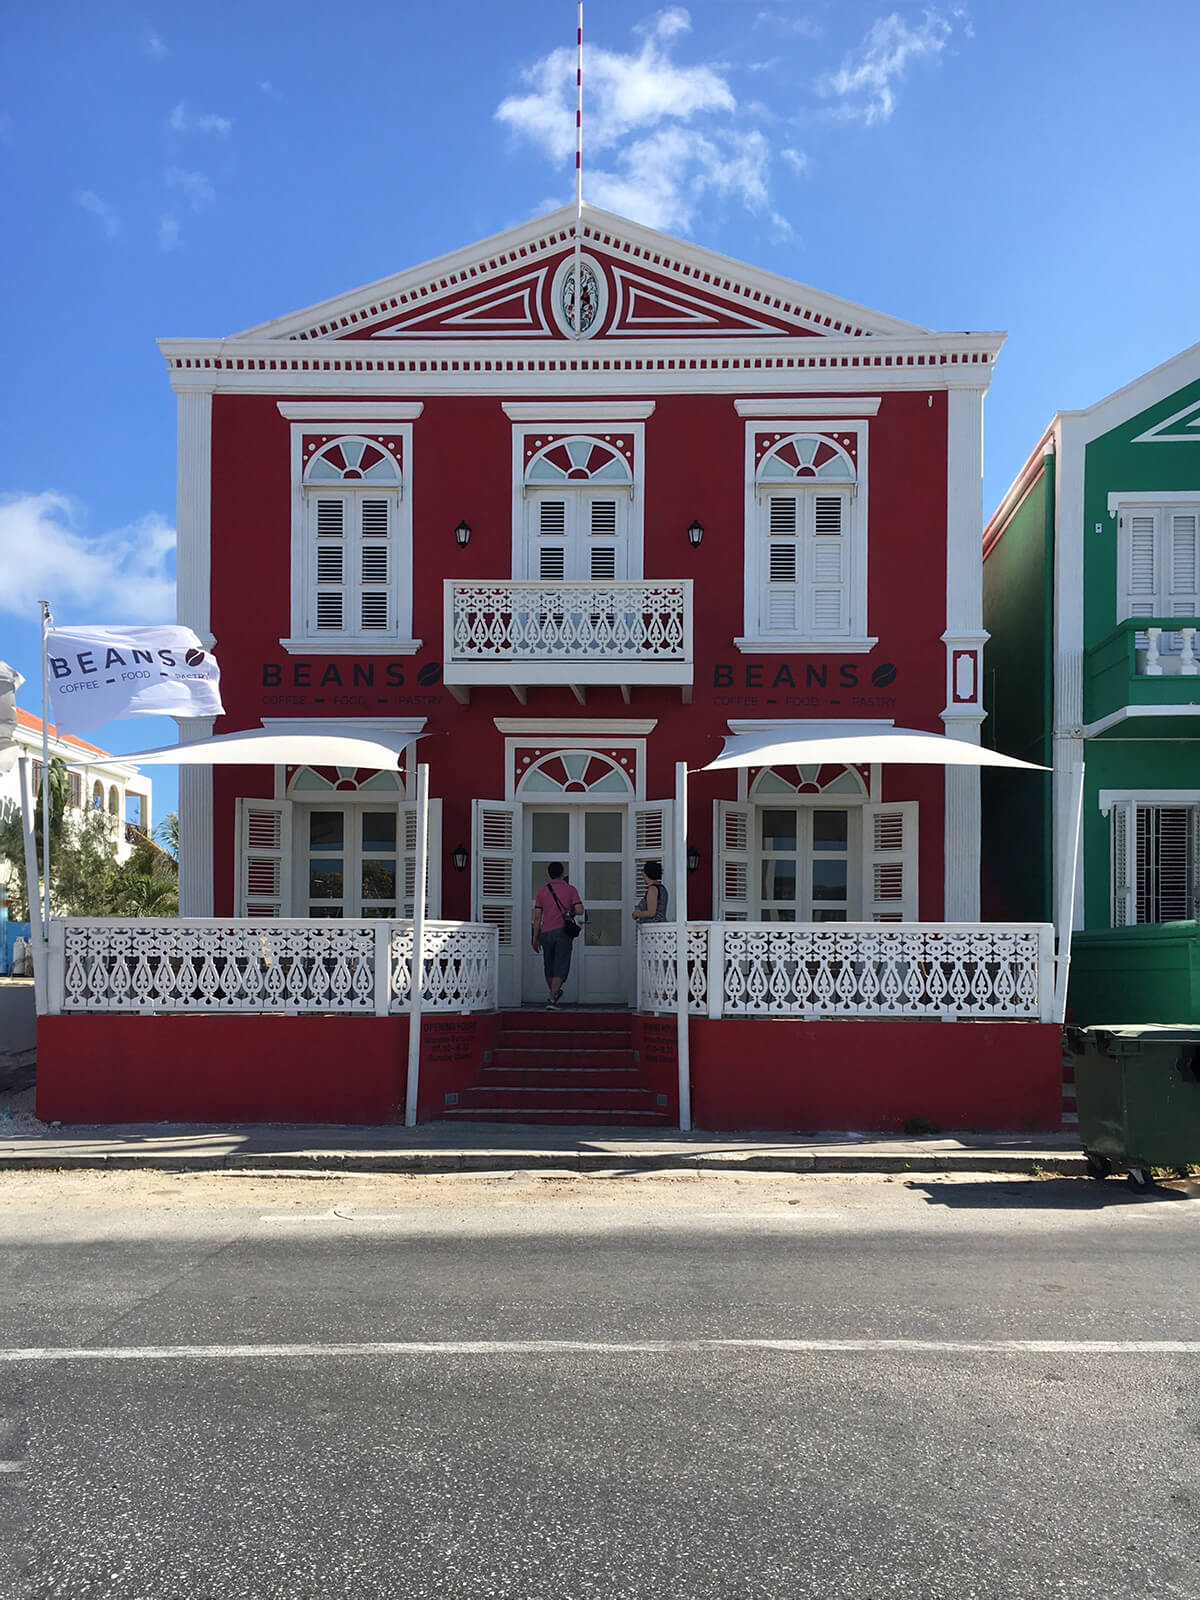 willemstad-curacao-architecture ©Will Travel for Food